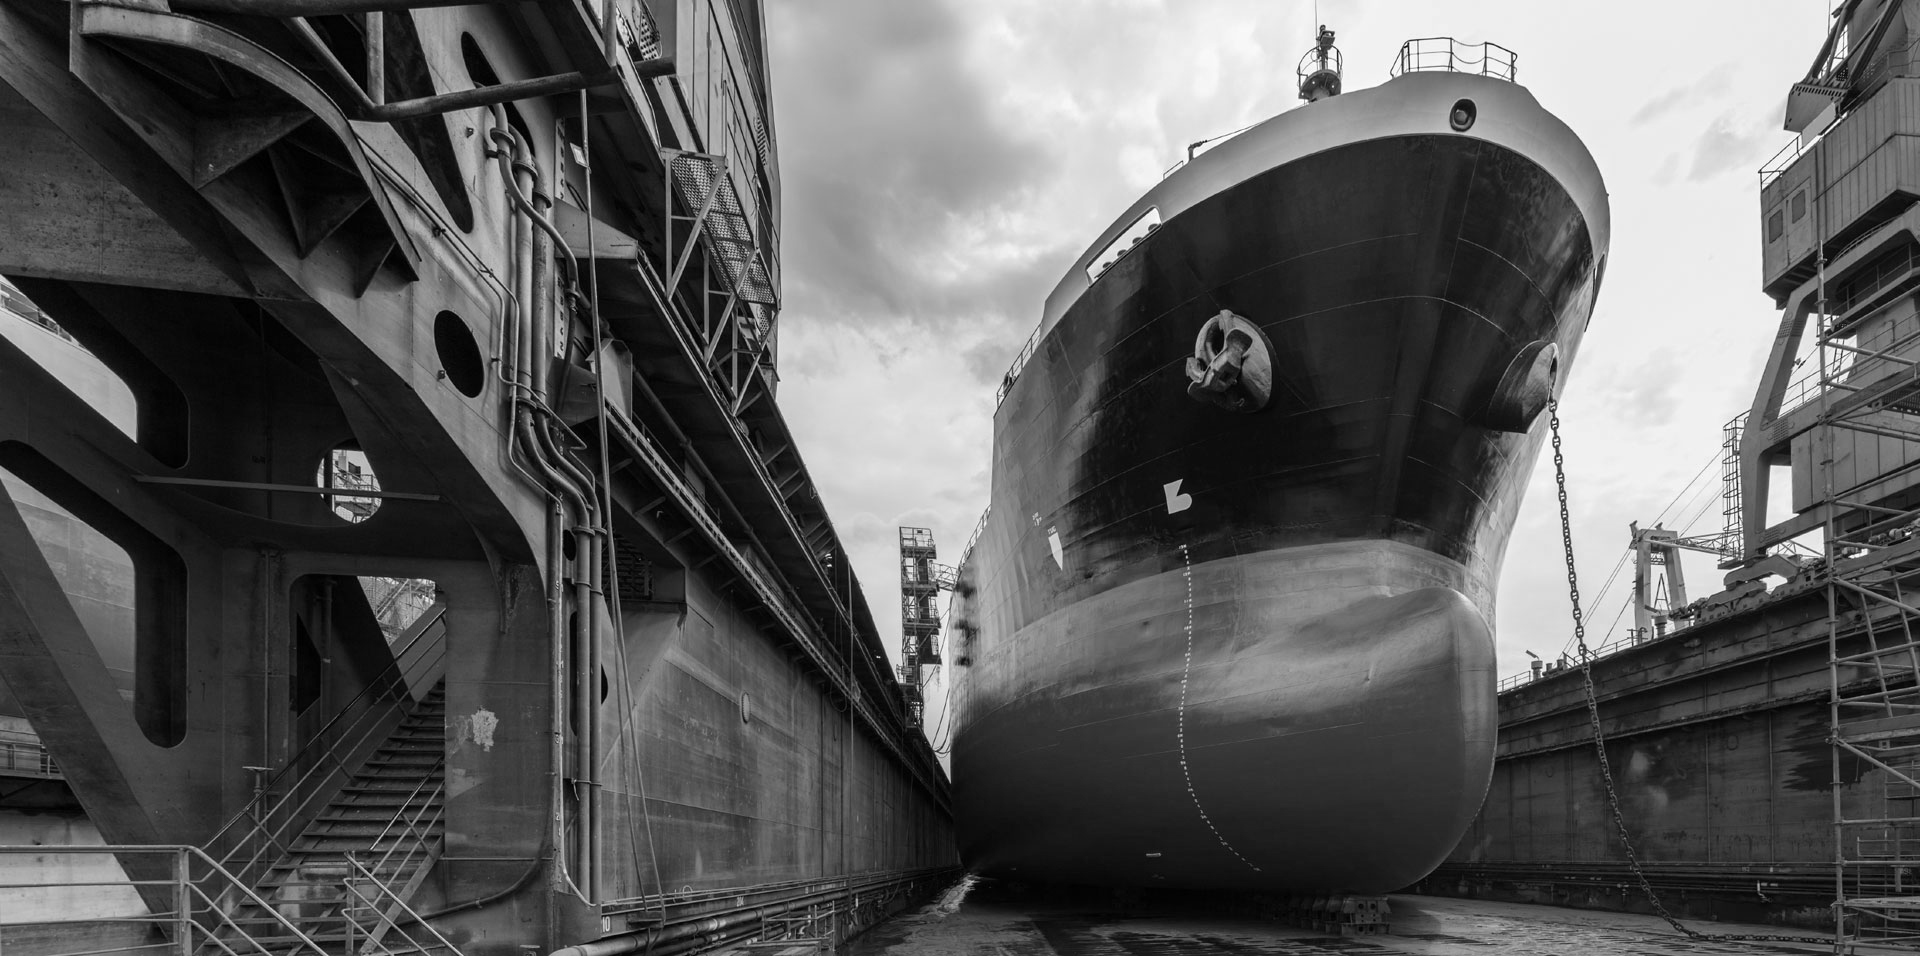 Tanker in dry dock